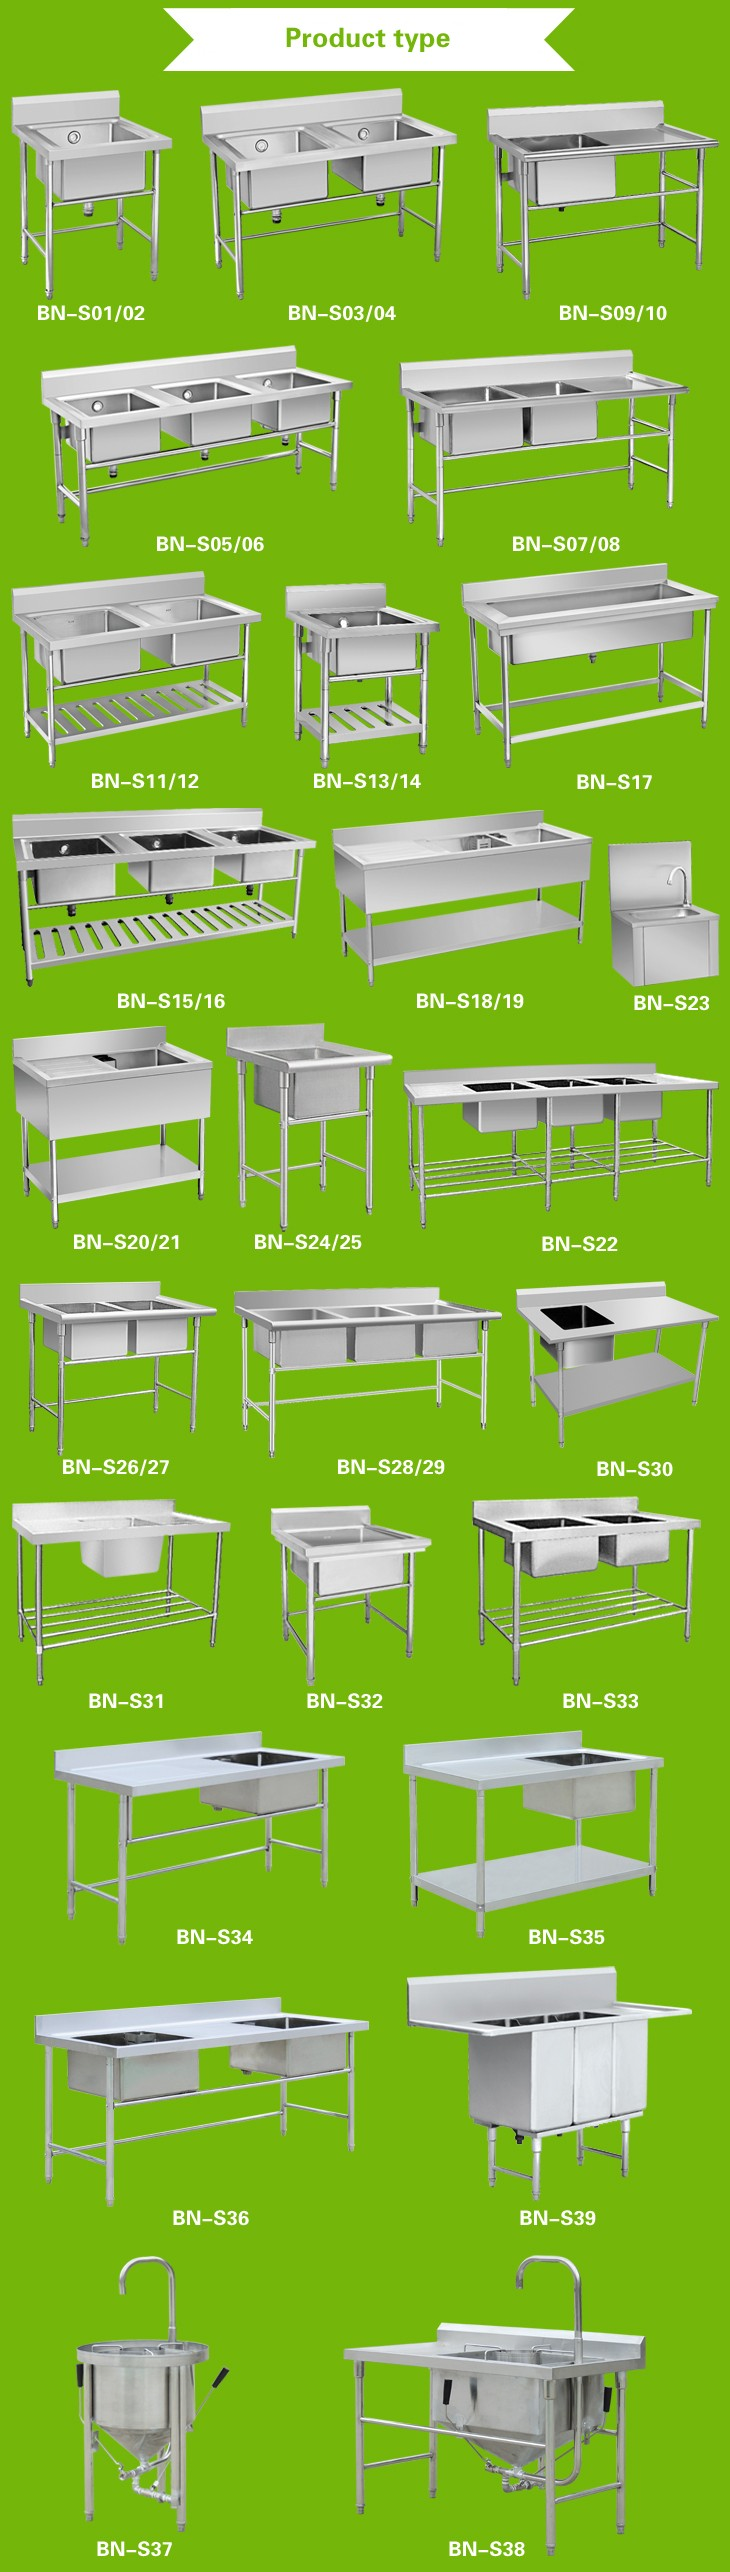 Cosbao names of kitchen equipments restaurant equipment 900 600 view - Professional Free Standing Kitchen Sink Kitchen Project Products